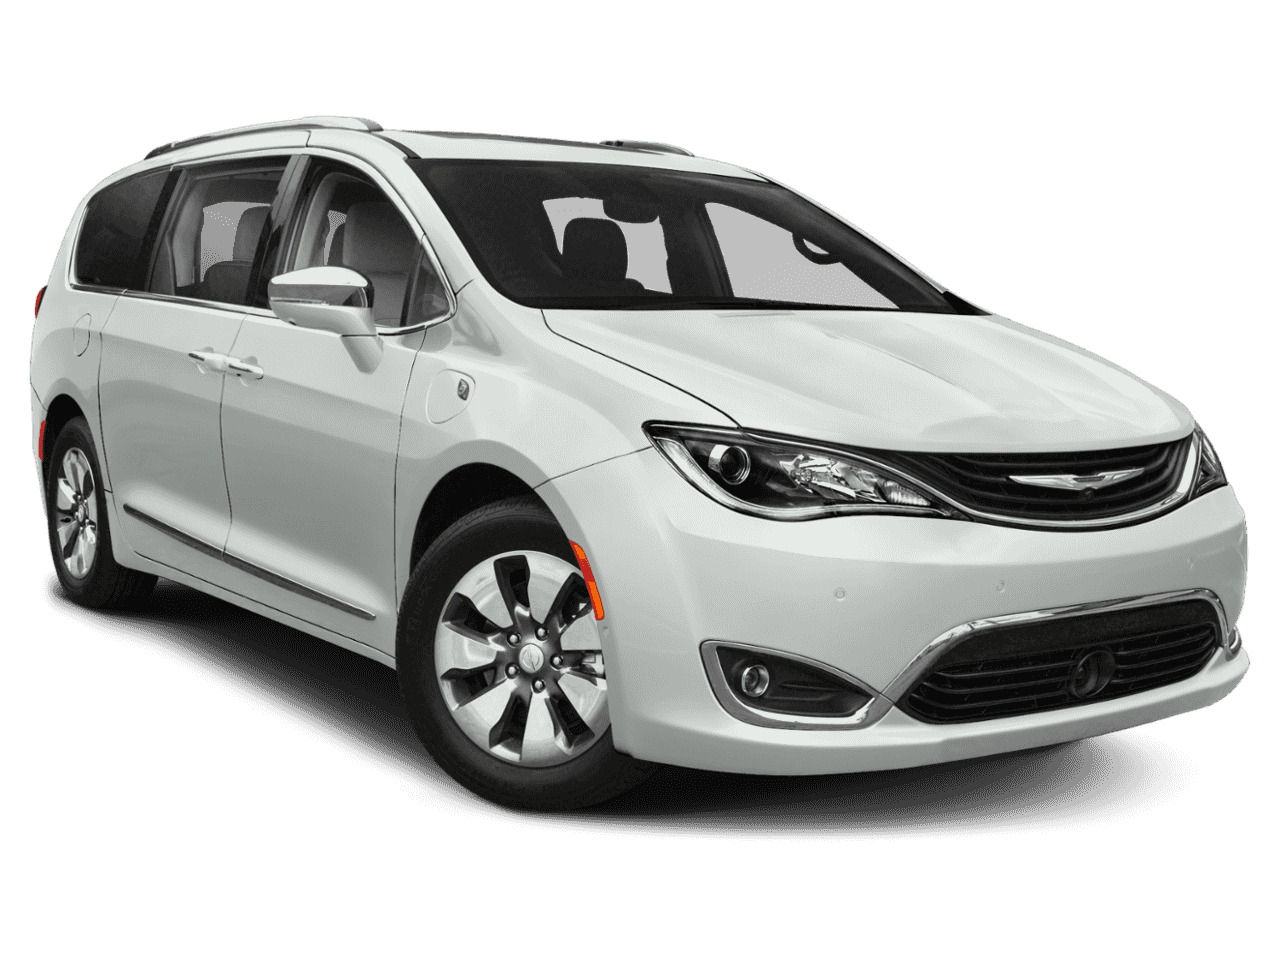 "2019 Chrysler<br/><span class=""vdp-trim"">Pacifica Hybrid Limited FWD Mini-van, Passenger</span>"